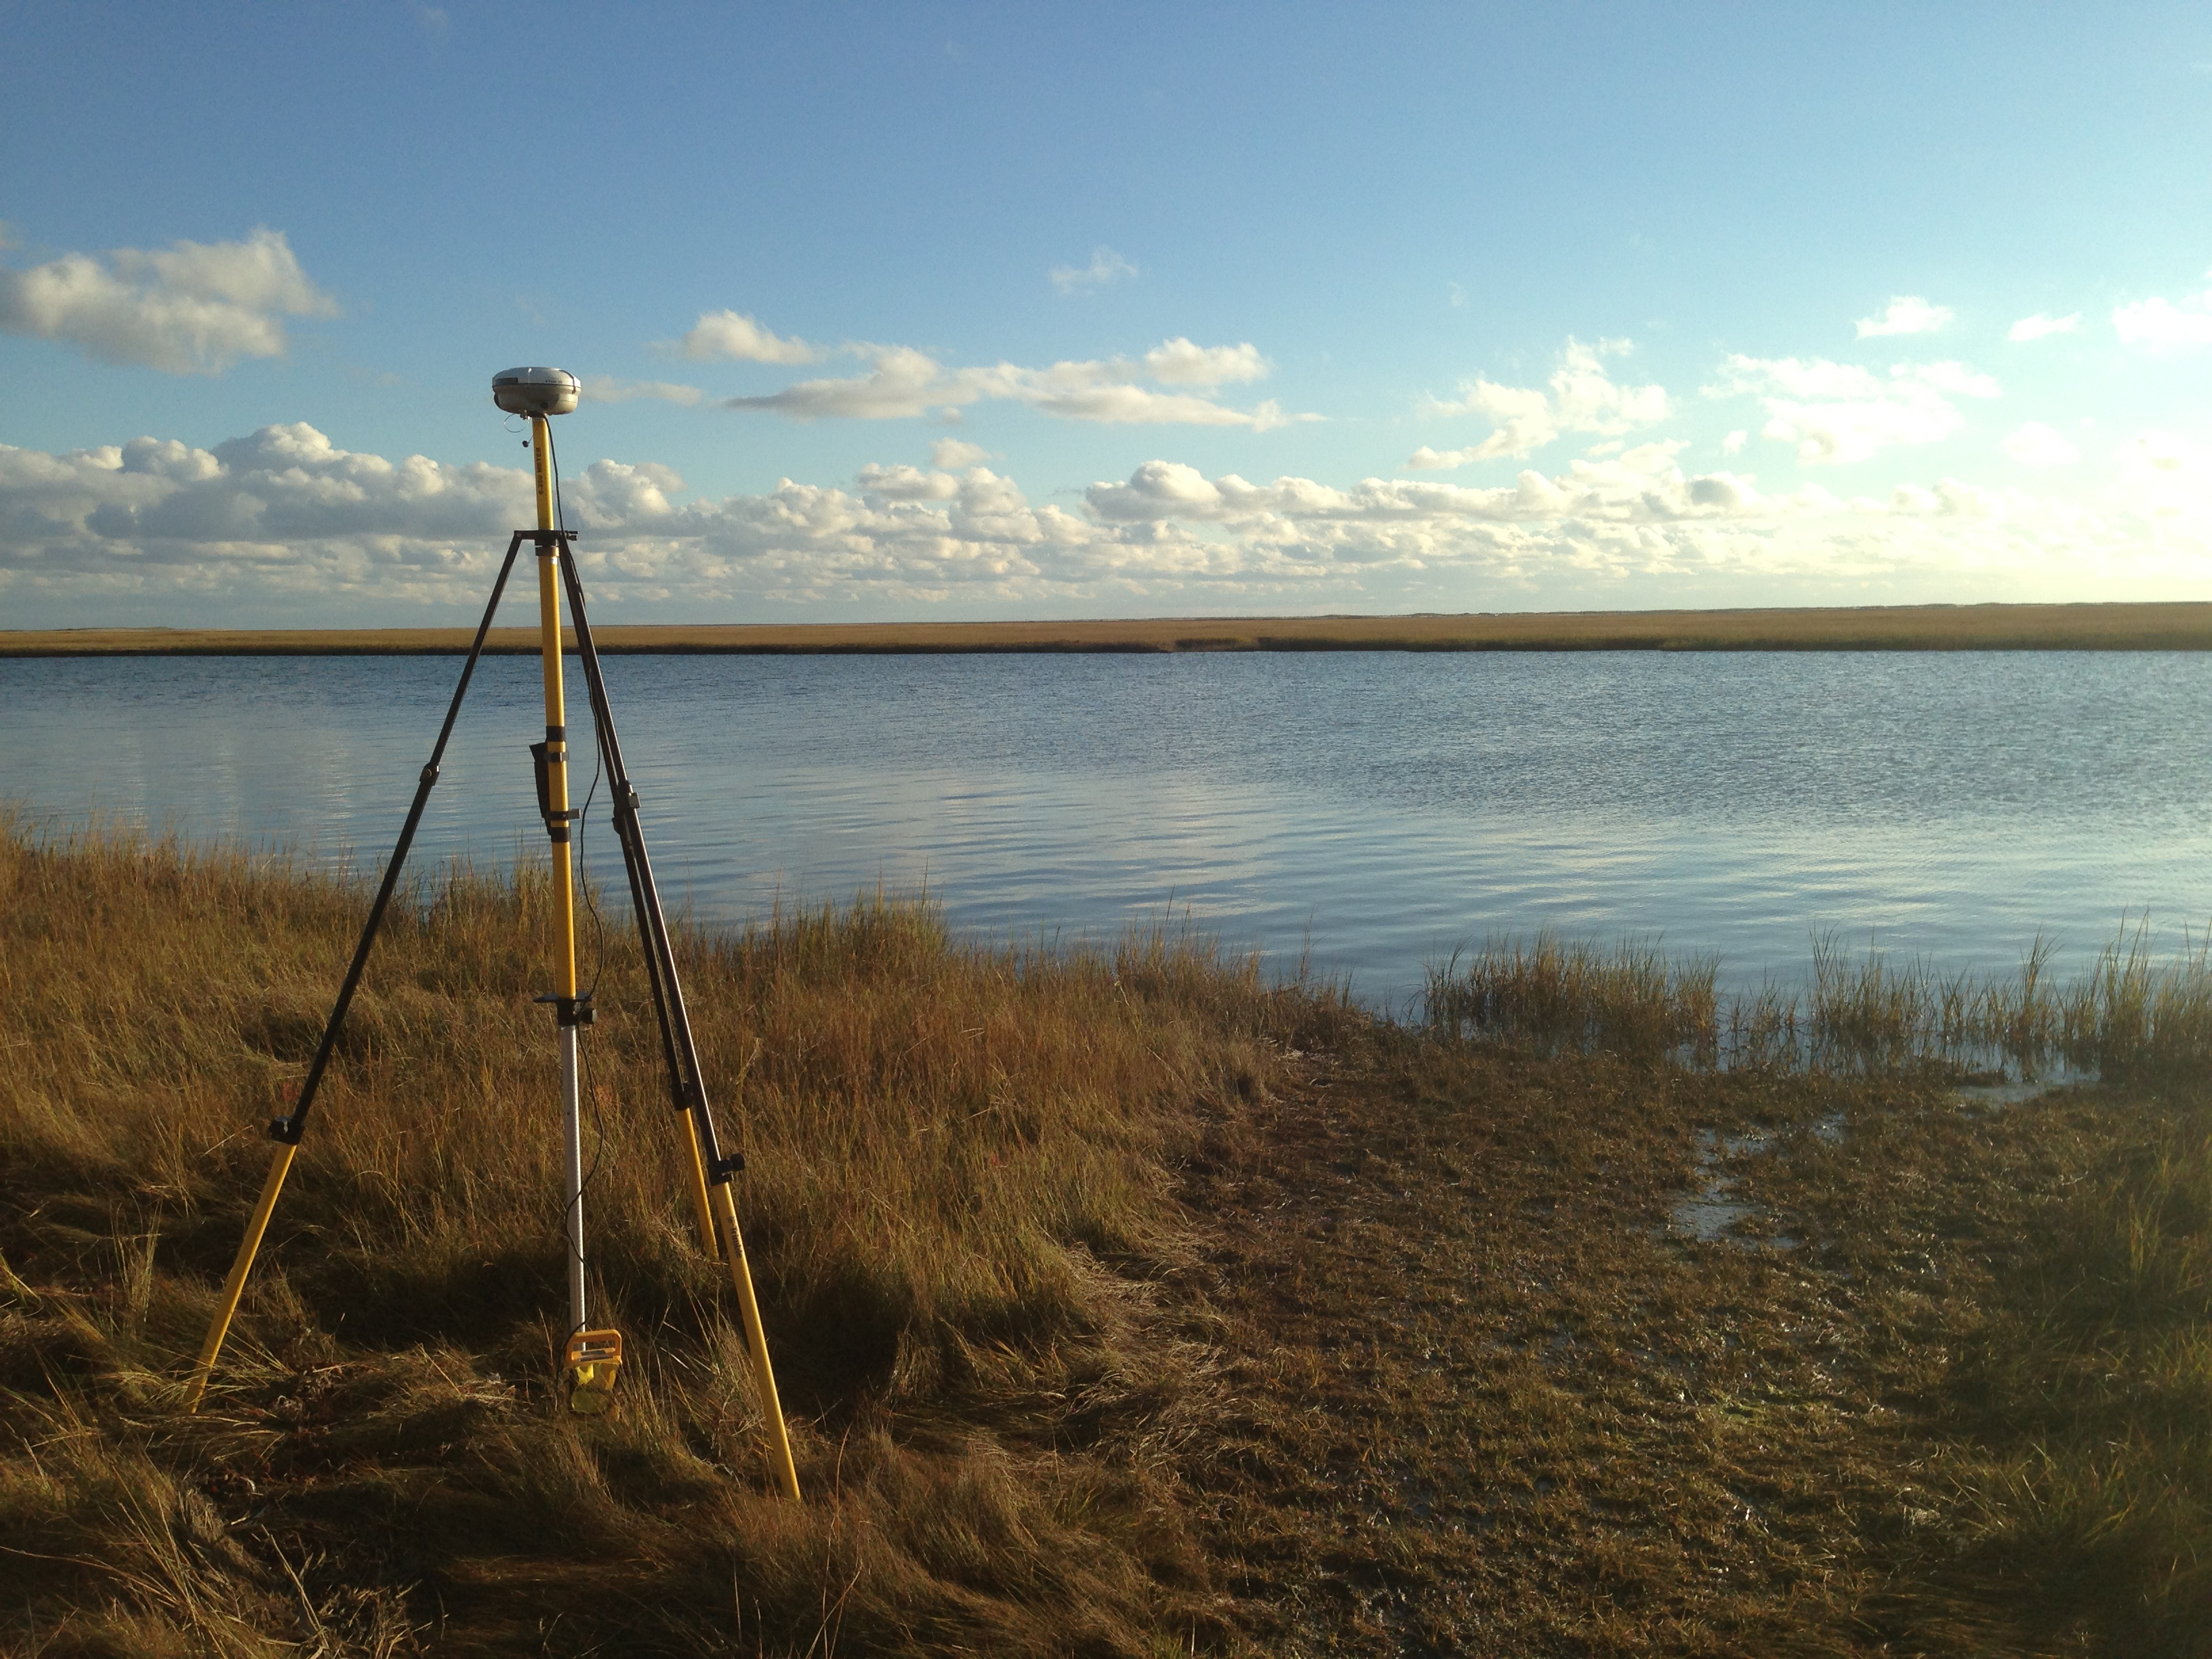 A federal award to NPS's Northeast Coastal and Barrier Network has made state-of-the-art survey equipment available to park scientists. It will support research efforts on coastal resilience and enhance natural resource monitoring. NPS photo/J. Lynch.